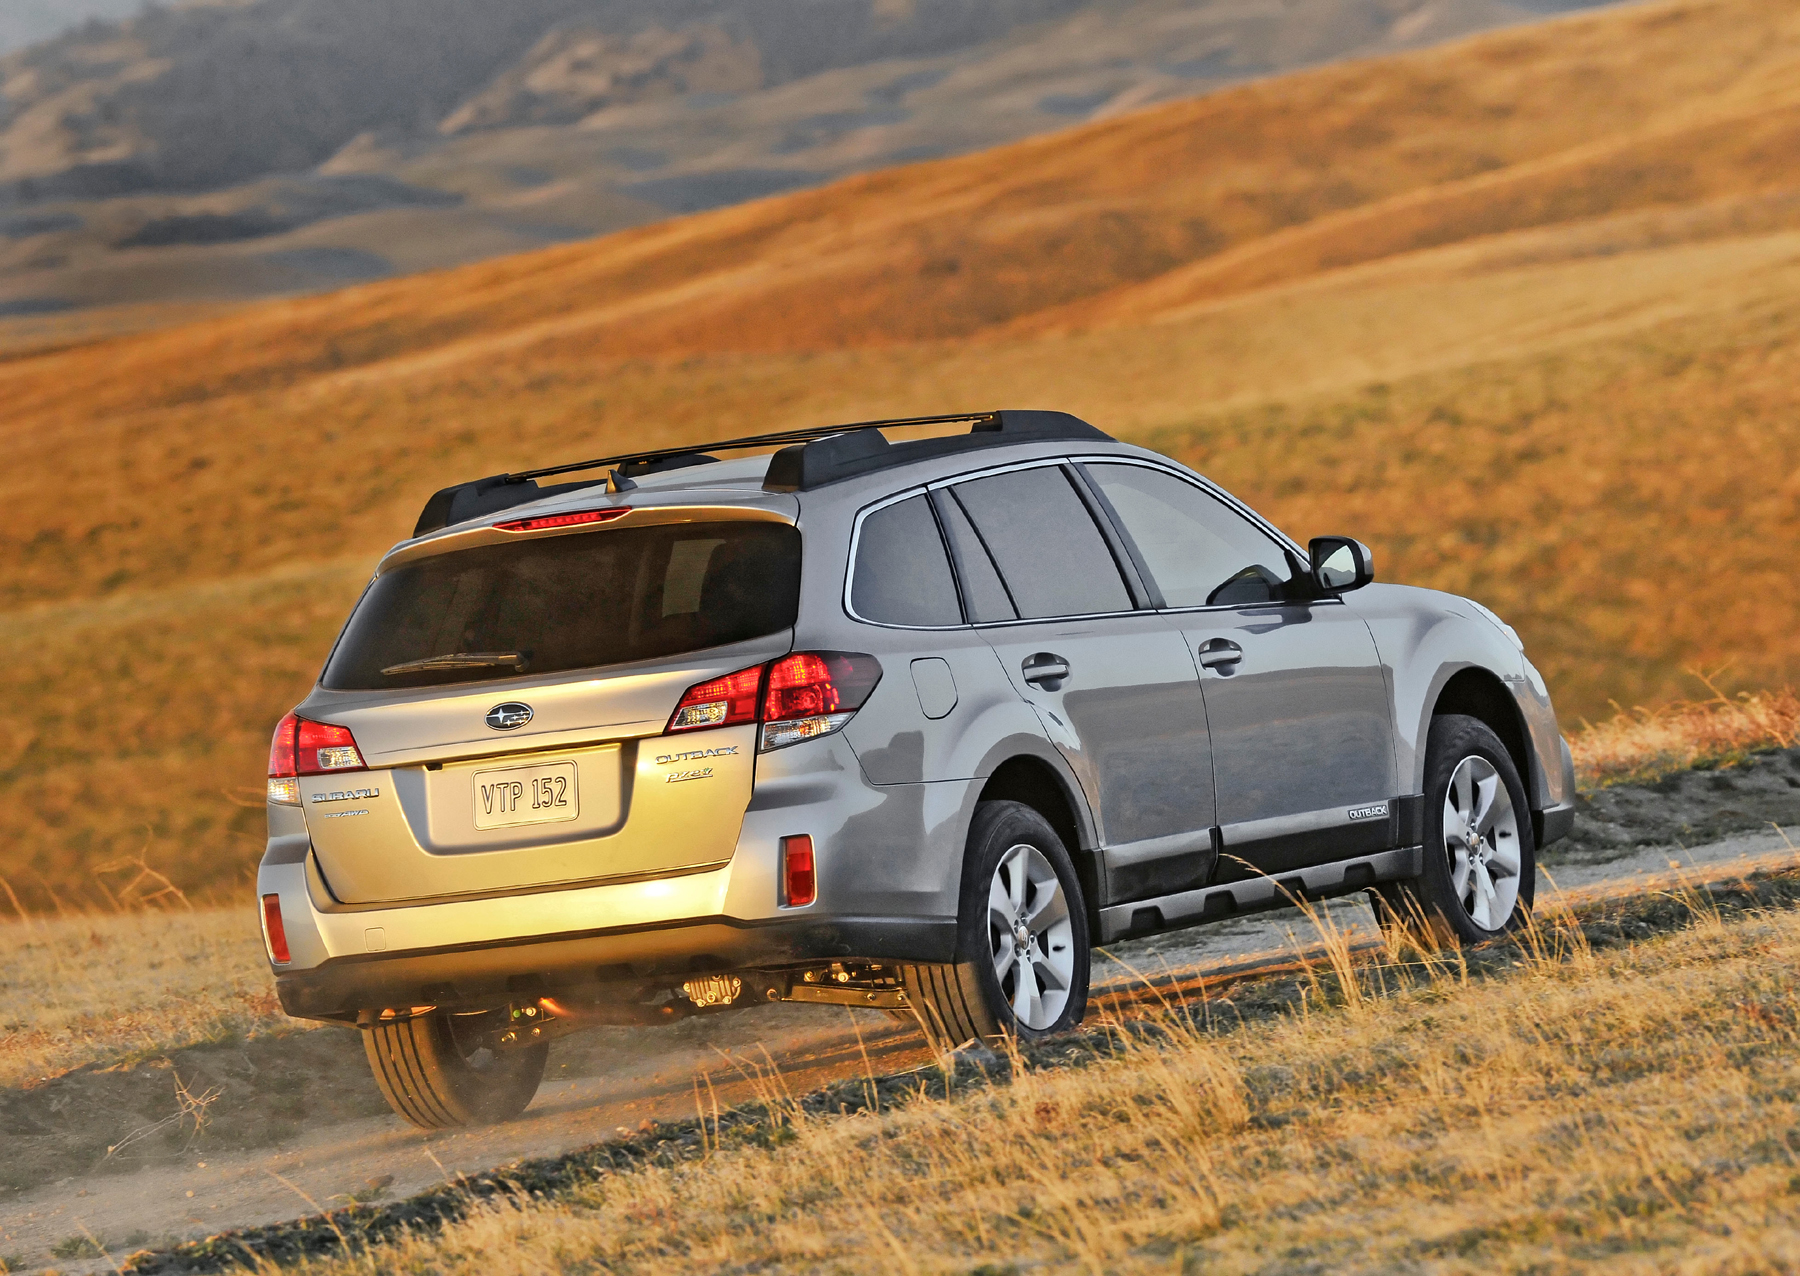 2013 subaru outback new engine revised styling bonus wheels outback 25i and 25i premium models offer a choice between a standard 6 speed manual transmission and the second generation lineartronic cvt the latter is vanachro Gallery